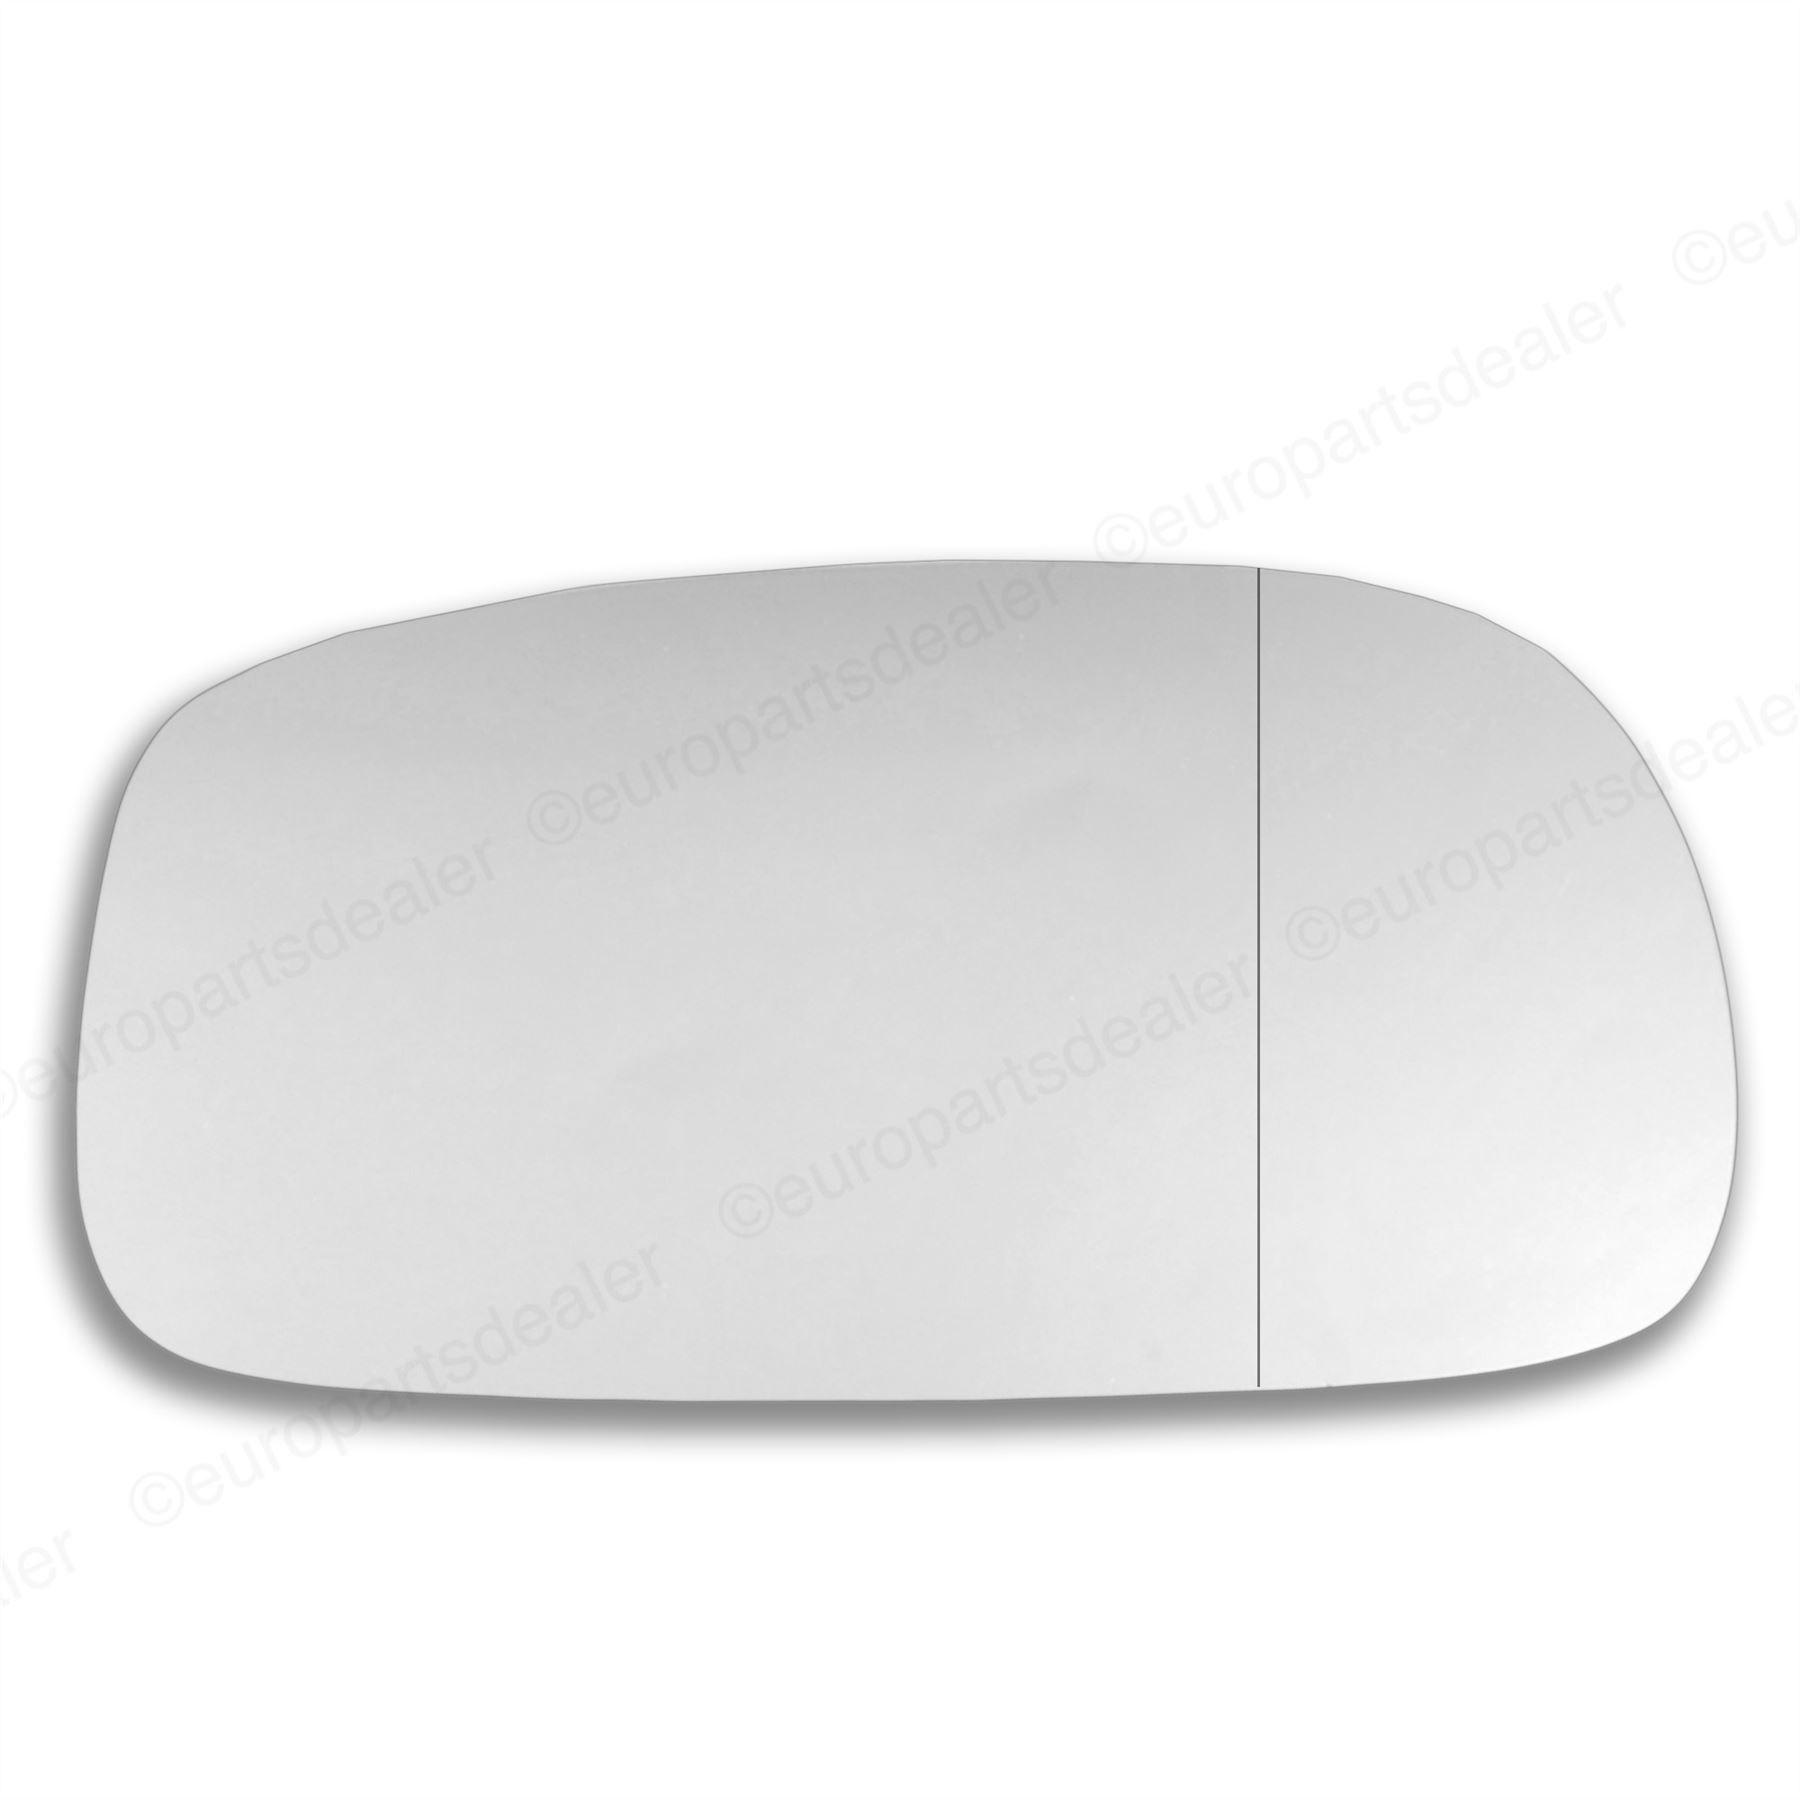 plate Right side Wide Angle Wing mirror glass for Nissan Micra K11 1992-2003